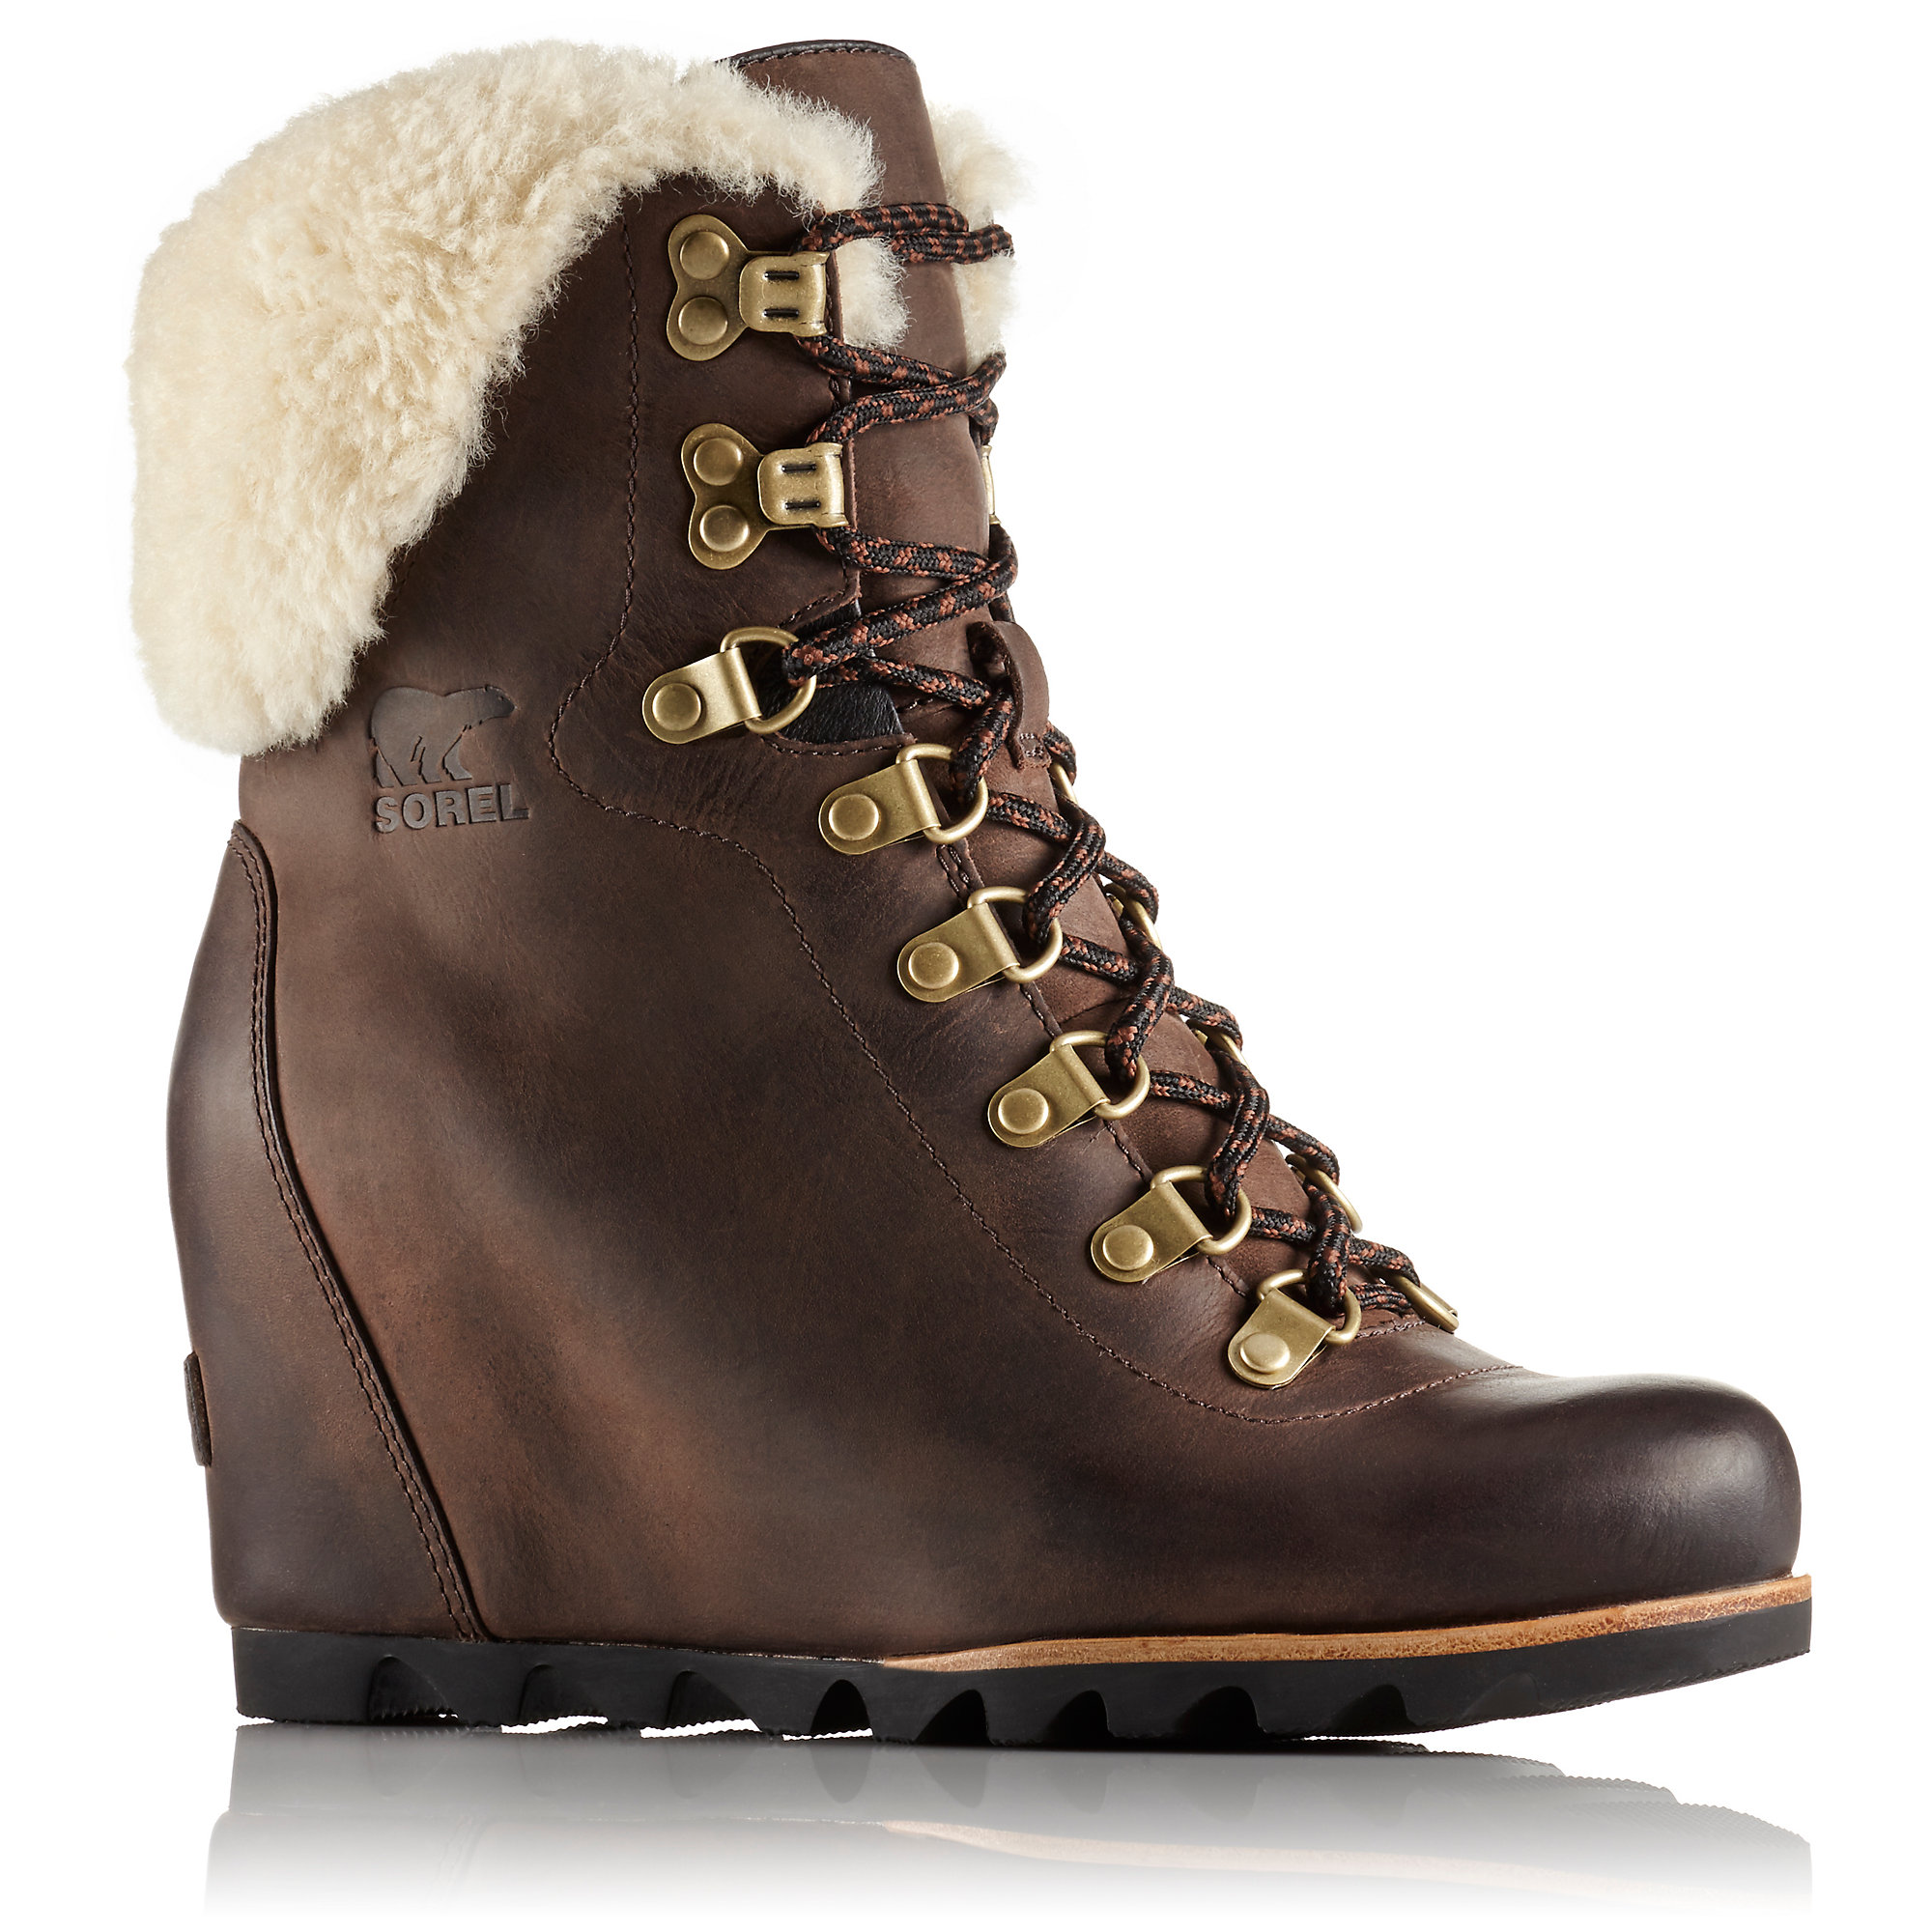 Sorel CONQUEST WEDGE SHEARLING BOOTS